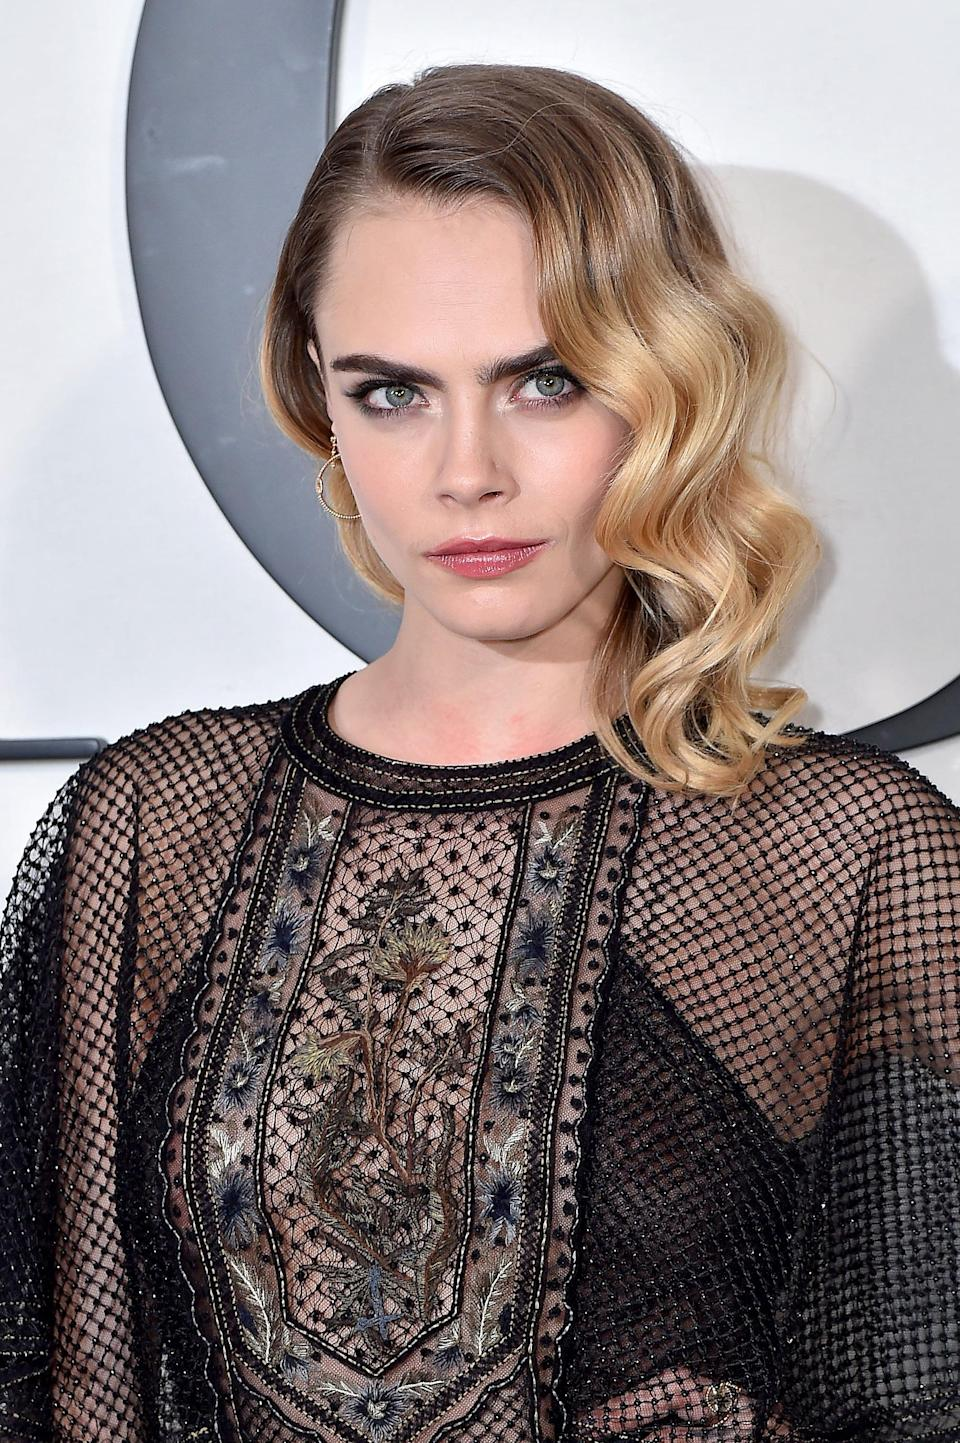 <p>In February, Delevingne took it back to basics with old Hollywood waves. She styled her hair in a side part tucked behind one ear, leaving the waves on her left side flow down. Simple and beautiful.</p>